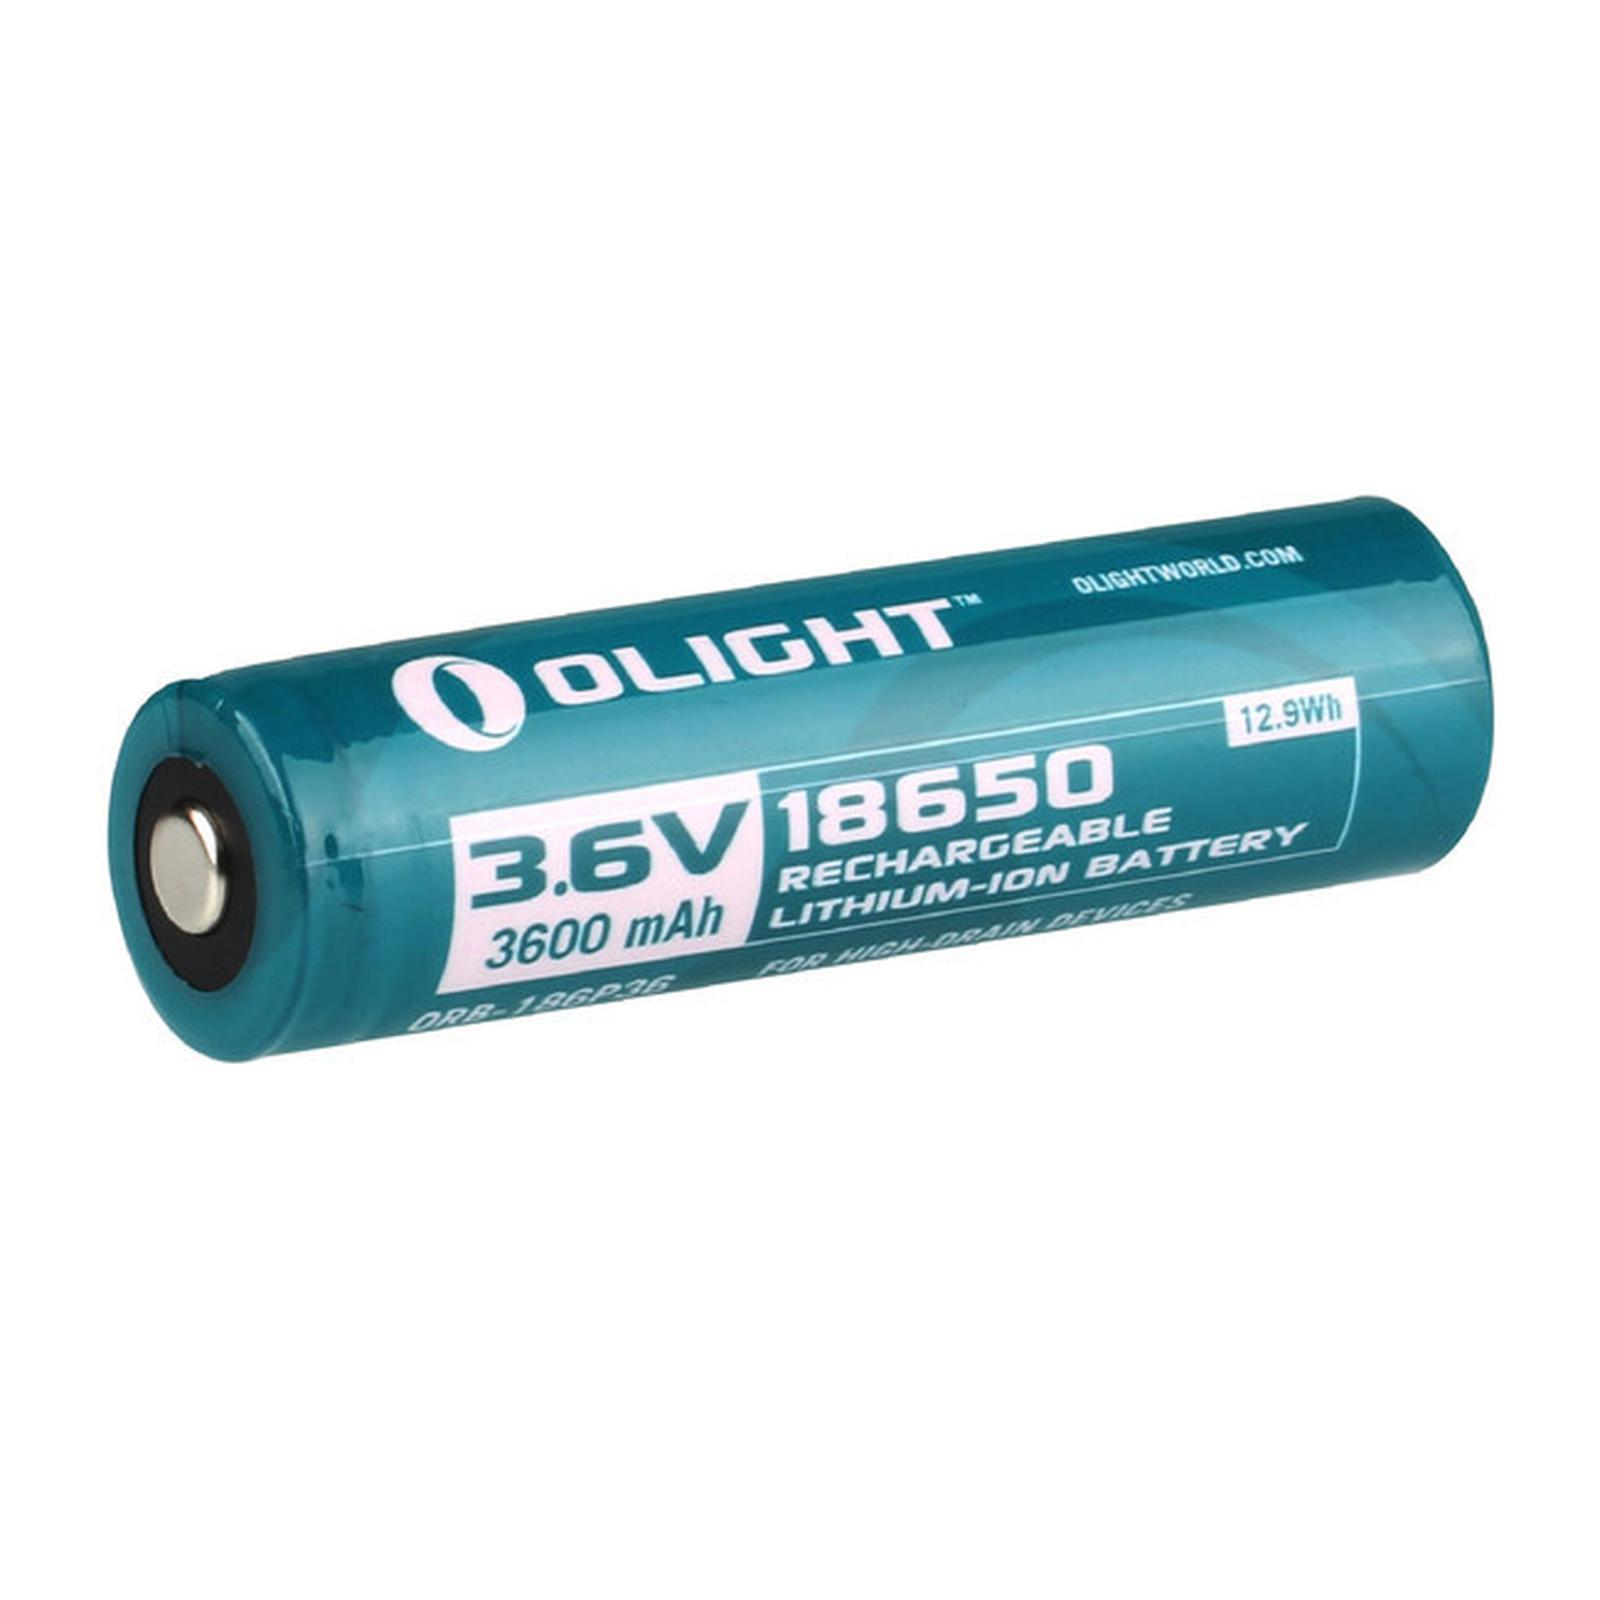 АККУМУЛЯТОР LI-ION OLIGHT ORB-186P36 18650 3,6 В. 3600 MAH аккумулятор telematic dj iph5 для apple iphone 5 1440 mah li ion